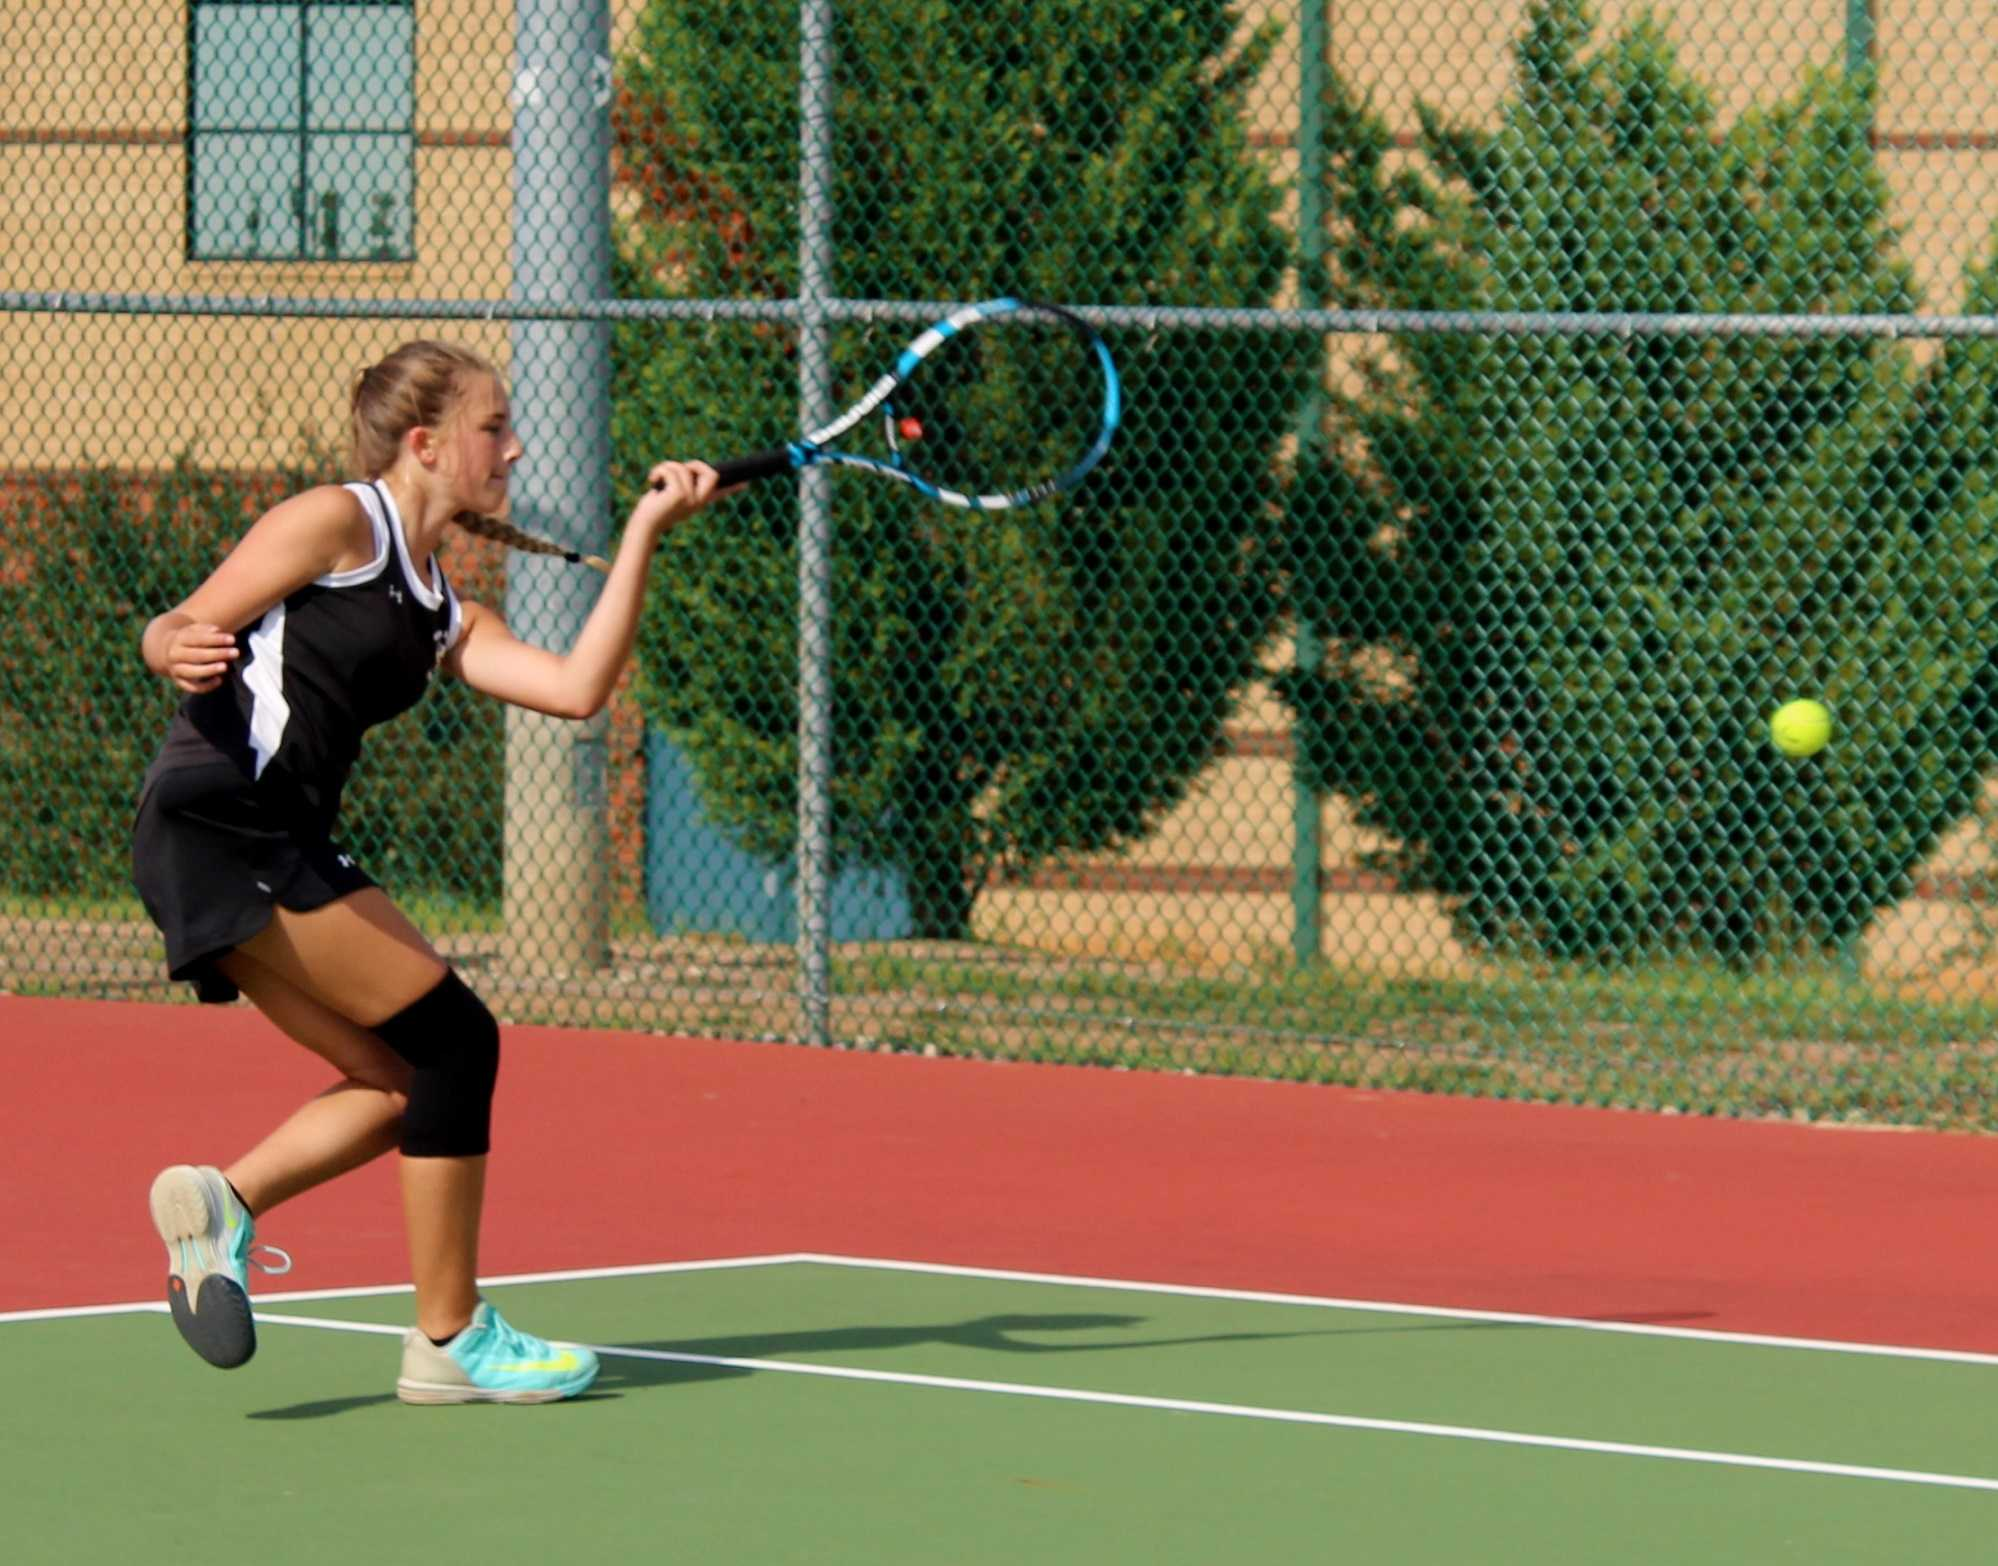 Greer High School sophomore Hannah Henline returns a serve in a recent match. The Yellow Jackets defeated Blue Ridge High School, 6-1, Wednesday in the final match of the regular season.